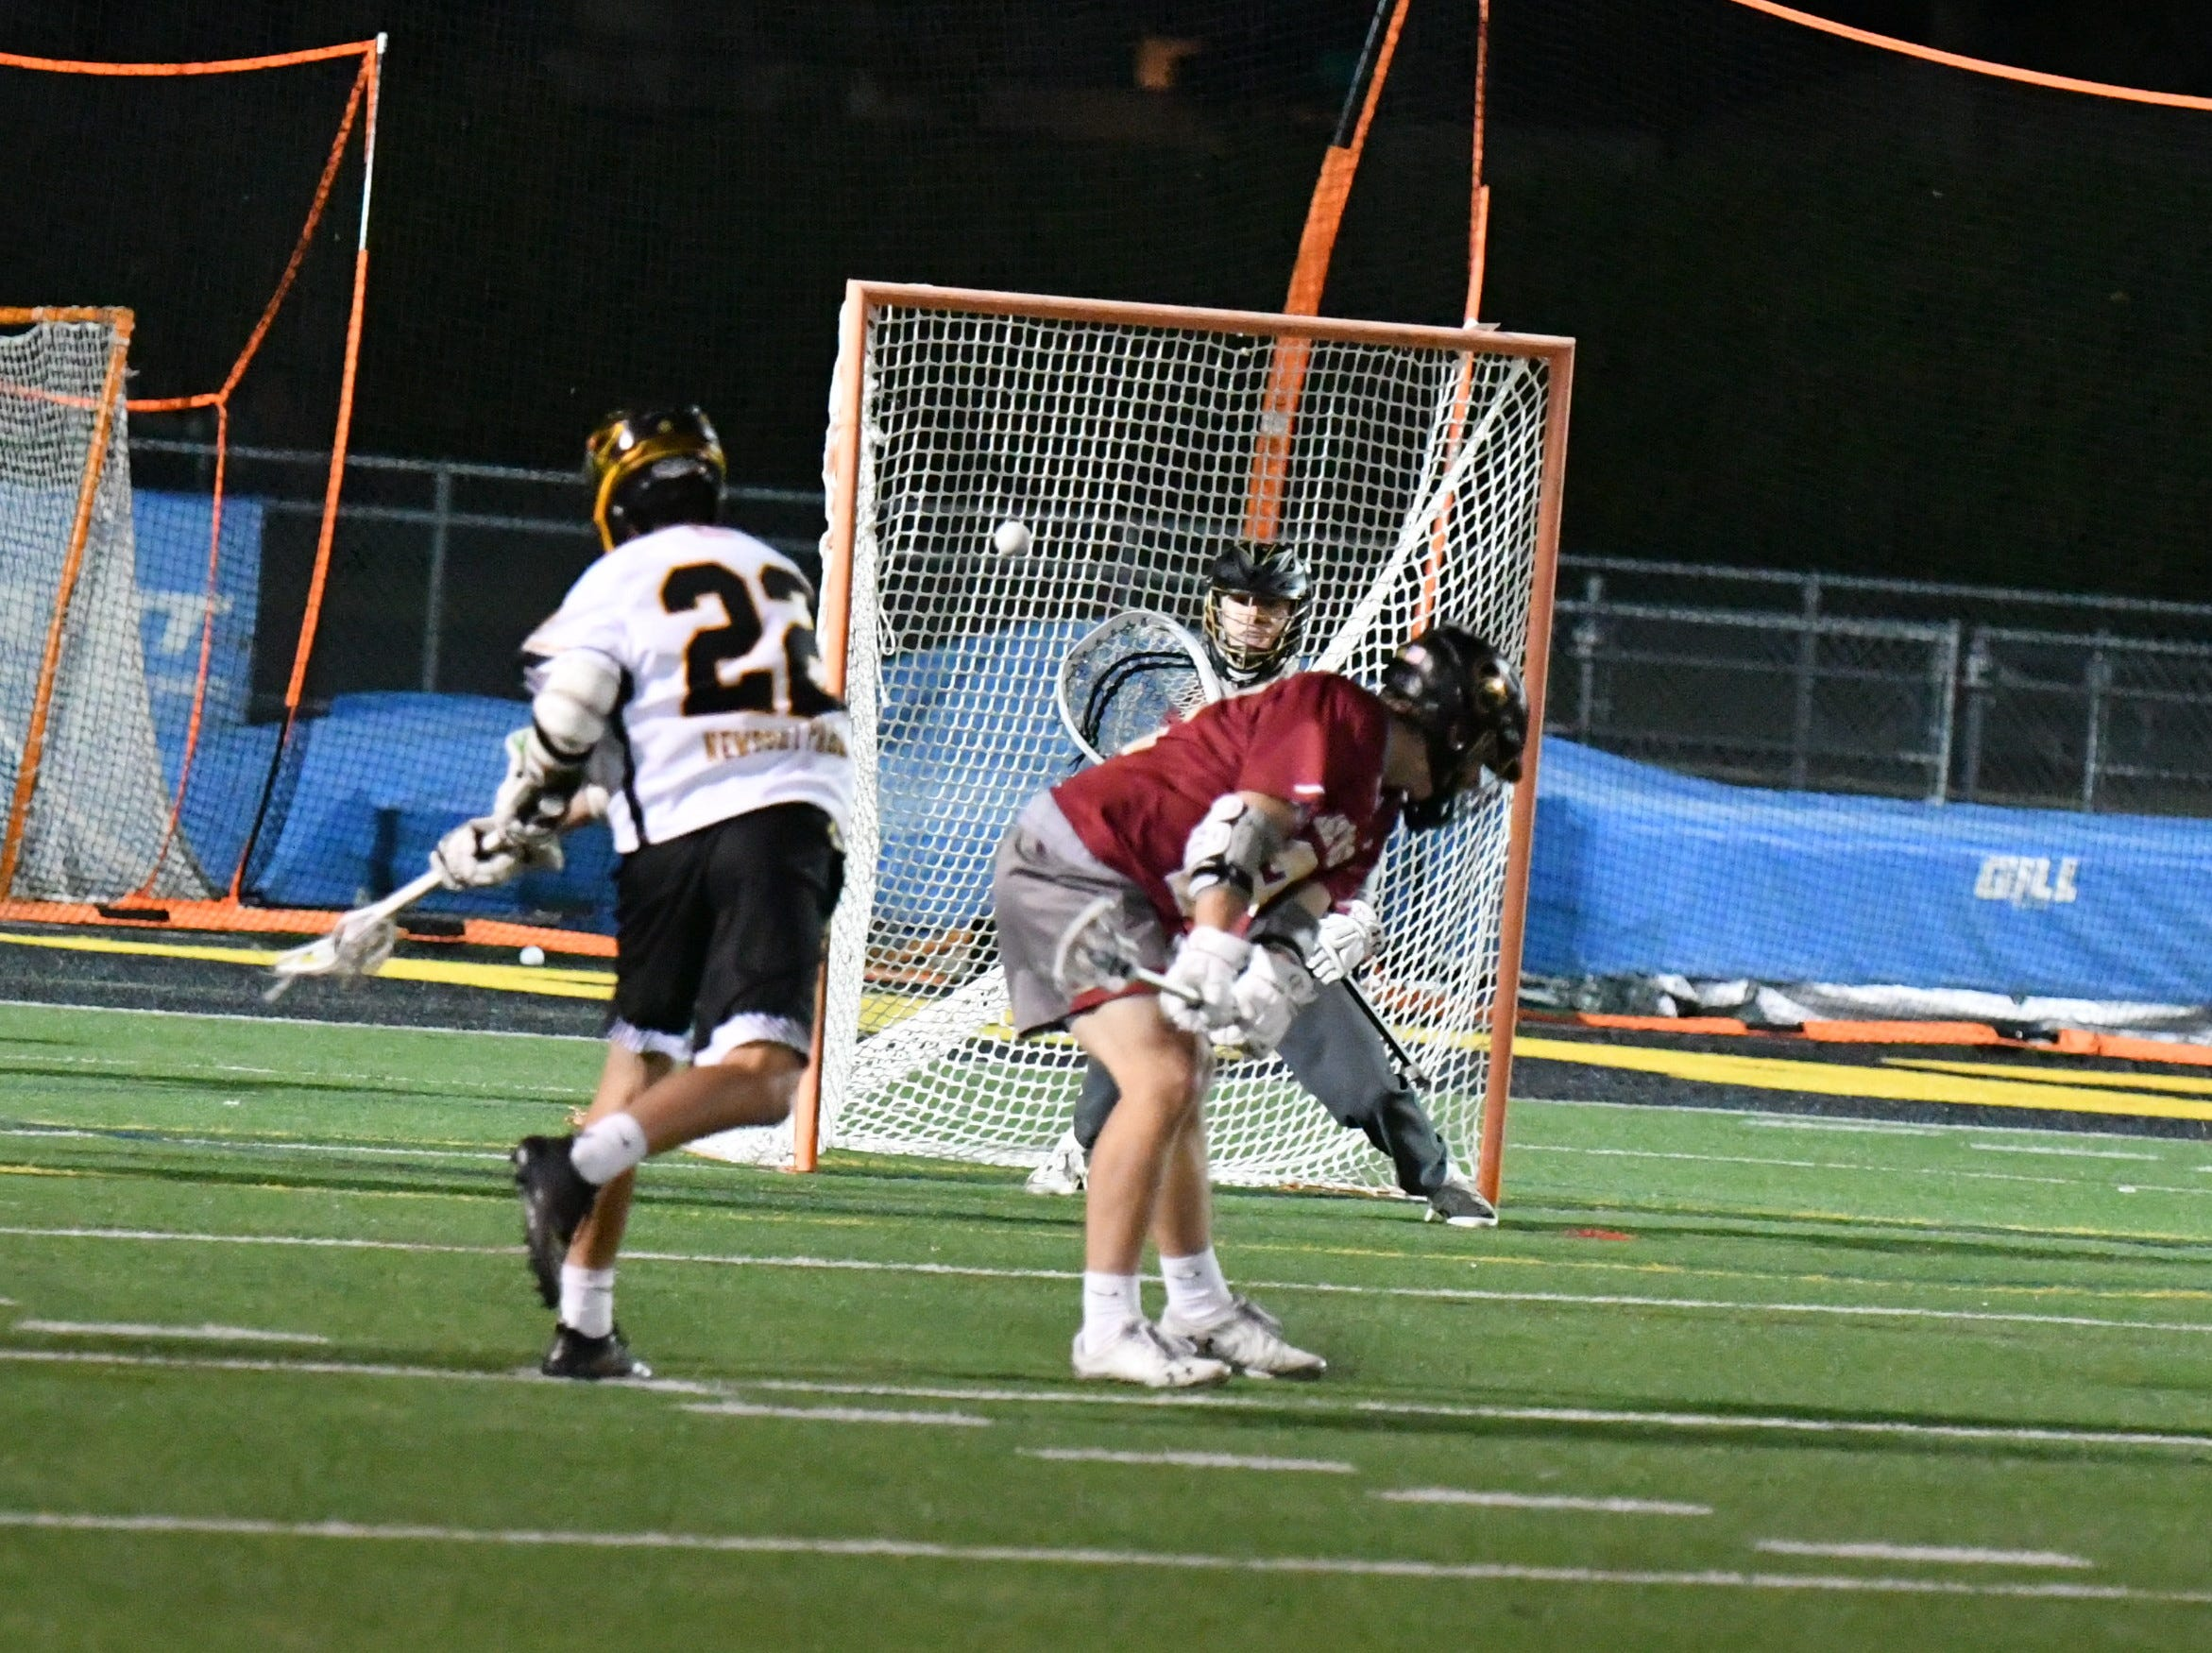 Newbury Park's Connor Vitto lets a shot rip against Oaks Christian goalie Mikey Thompson in a Marmonte League boys lacrosse game on March 20. Oaks Christian won, 8-2.